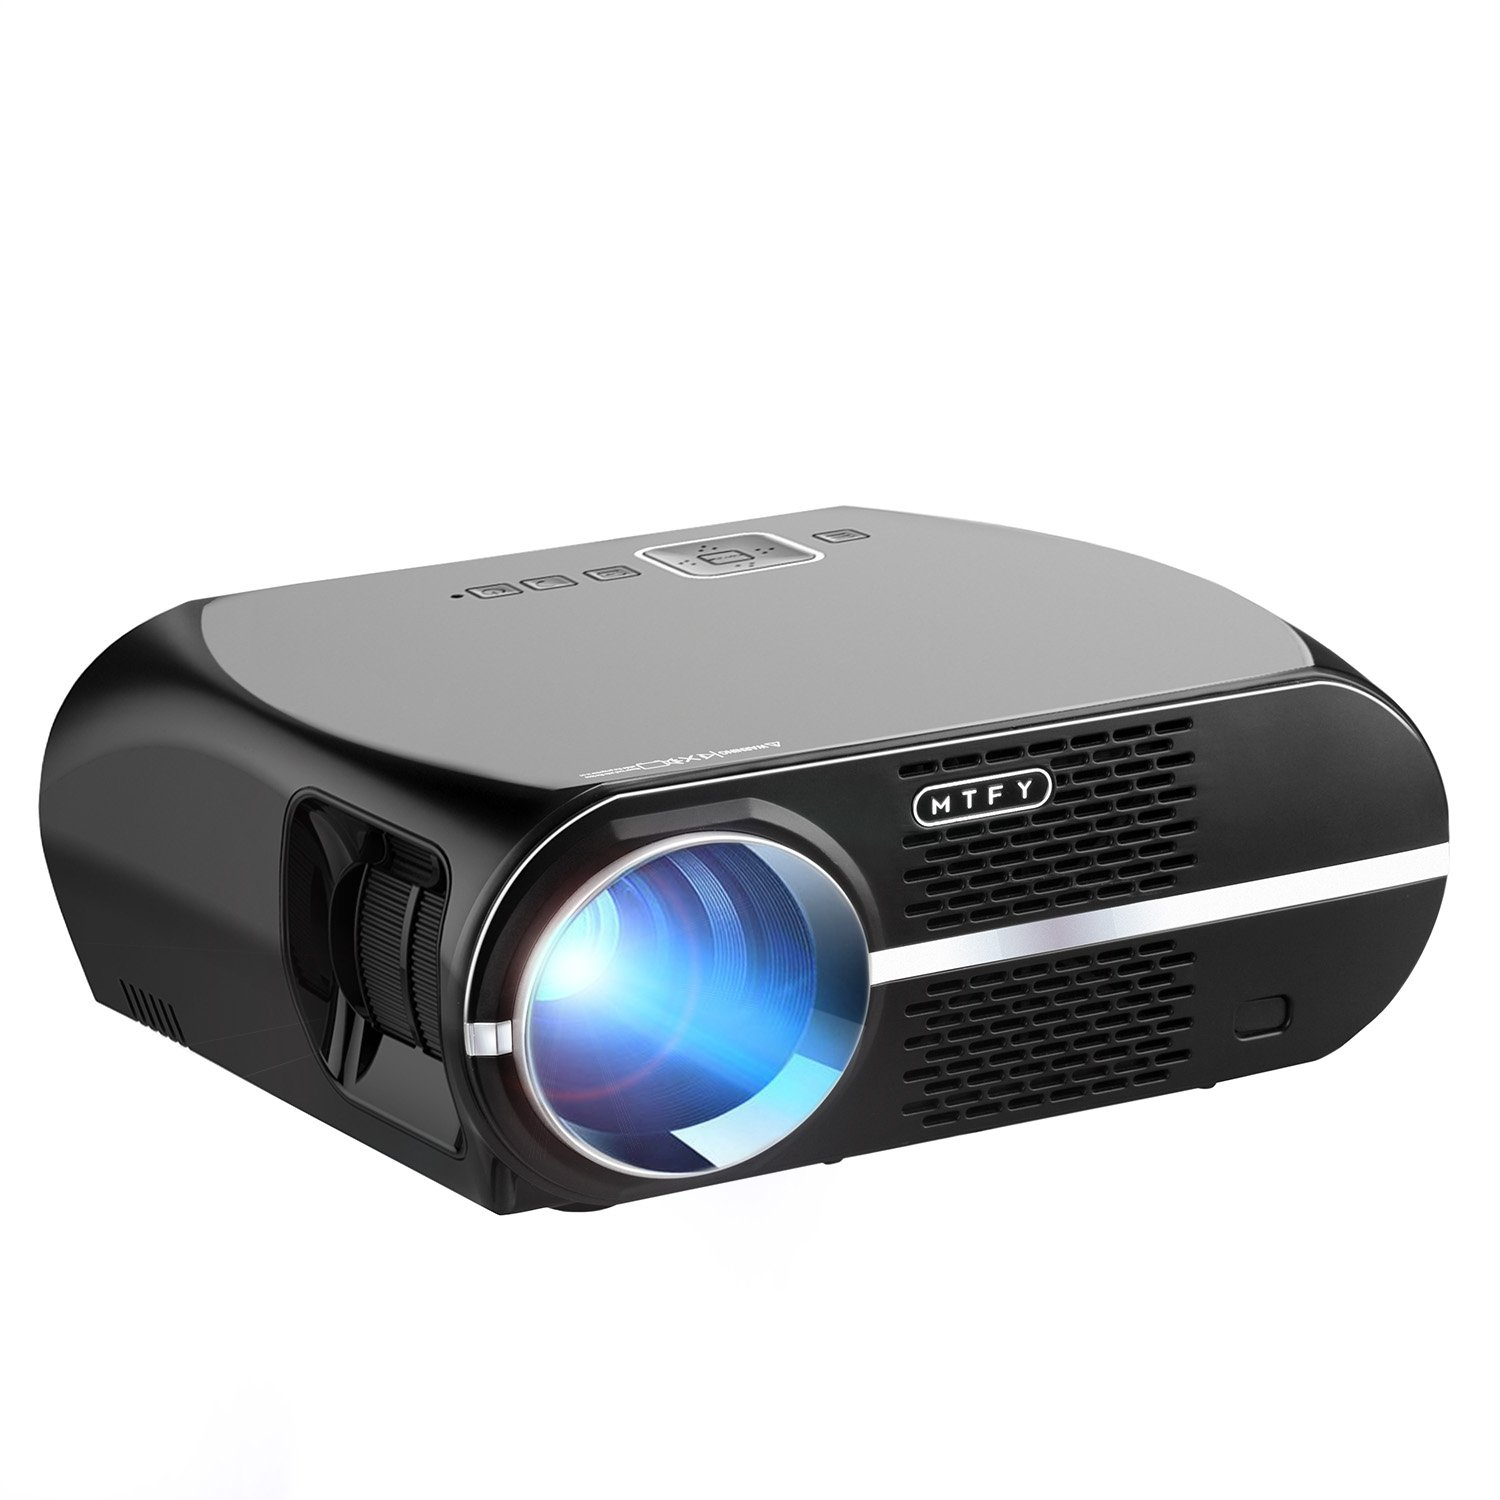 GP100 Video Projector,MTFY 3500 Lumens Portable LCD 1080P HD LED  Projector,Home Theater Projector for Movie,TV,Photos,Games,DVD,PC,Laptop  Support